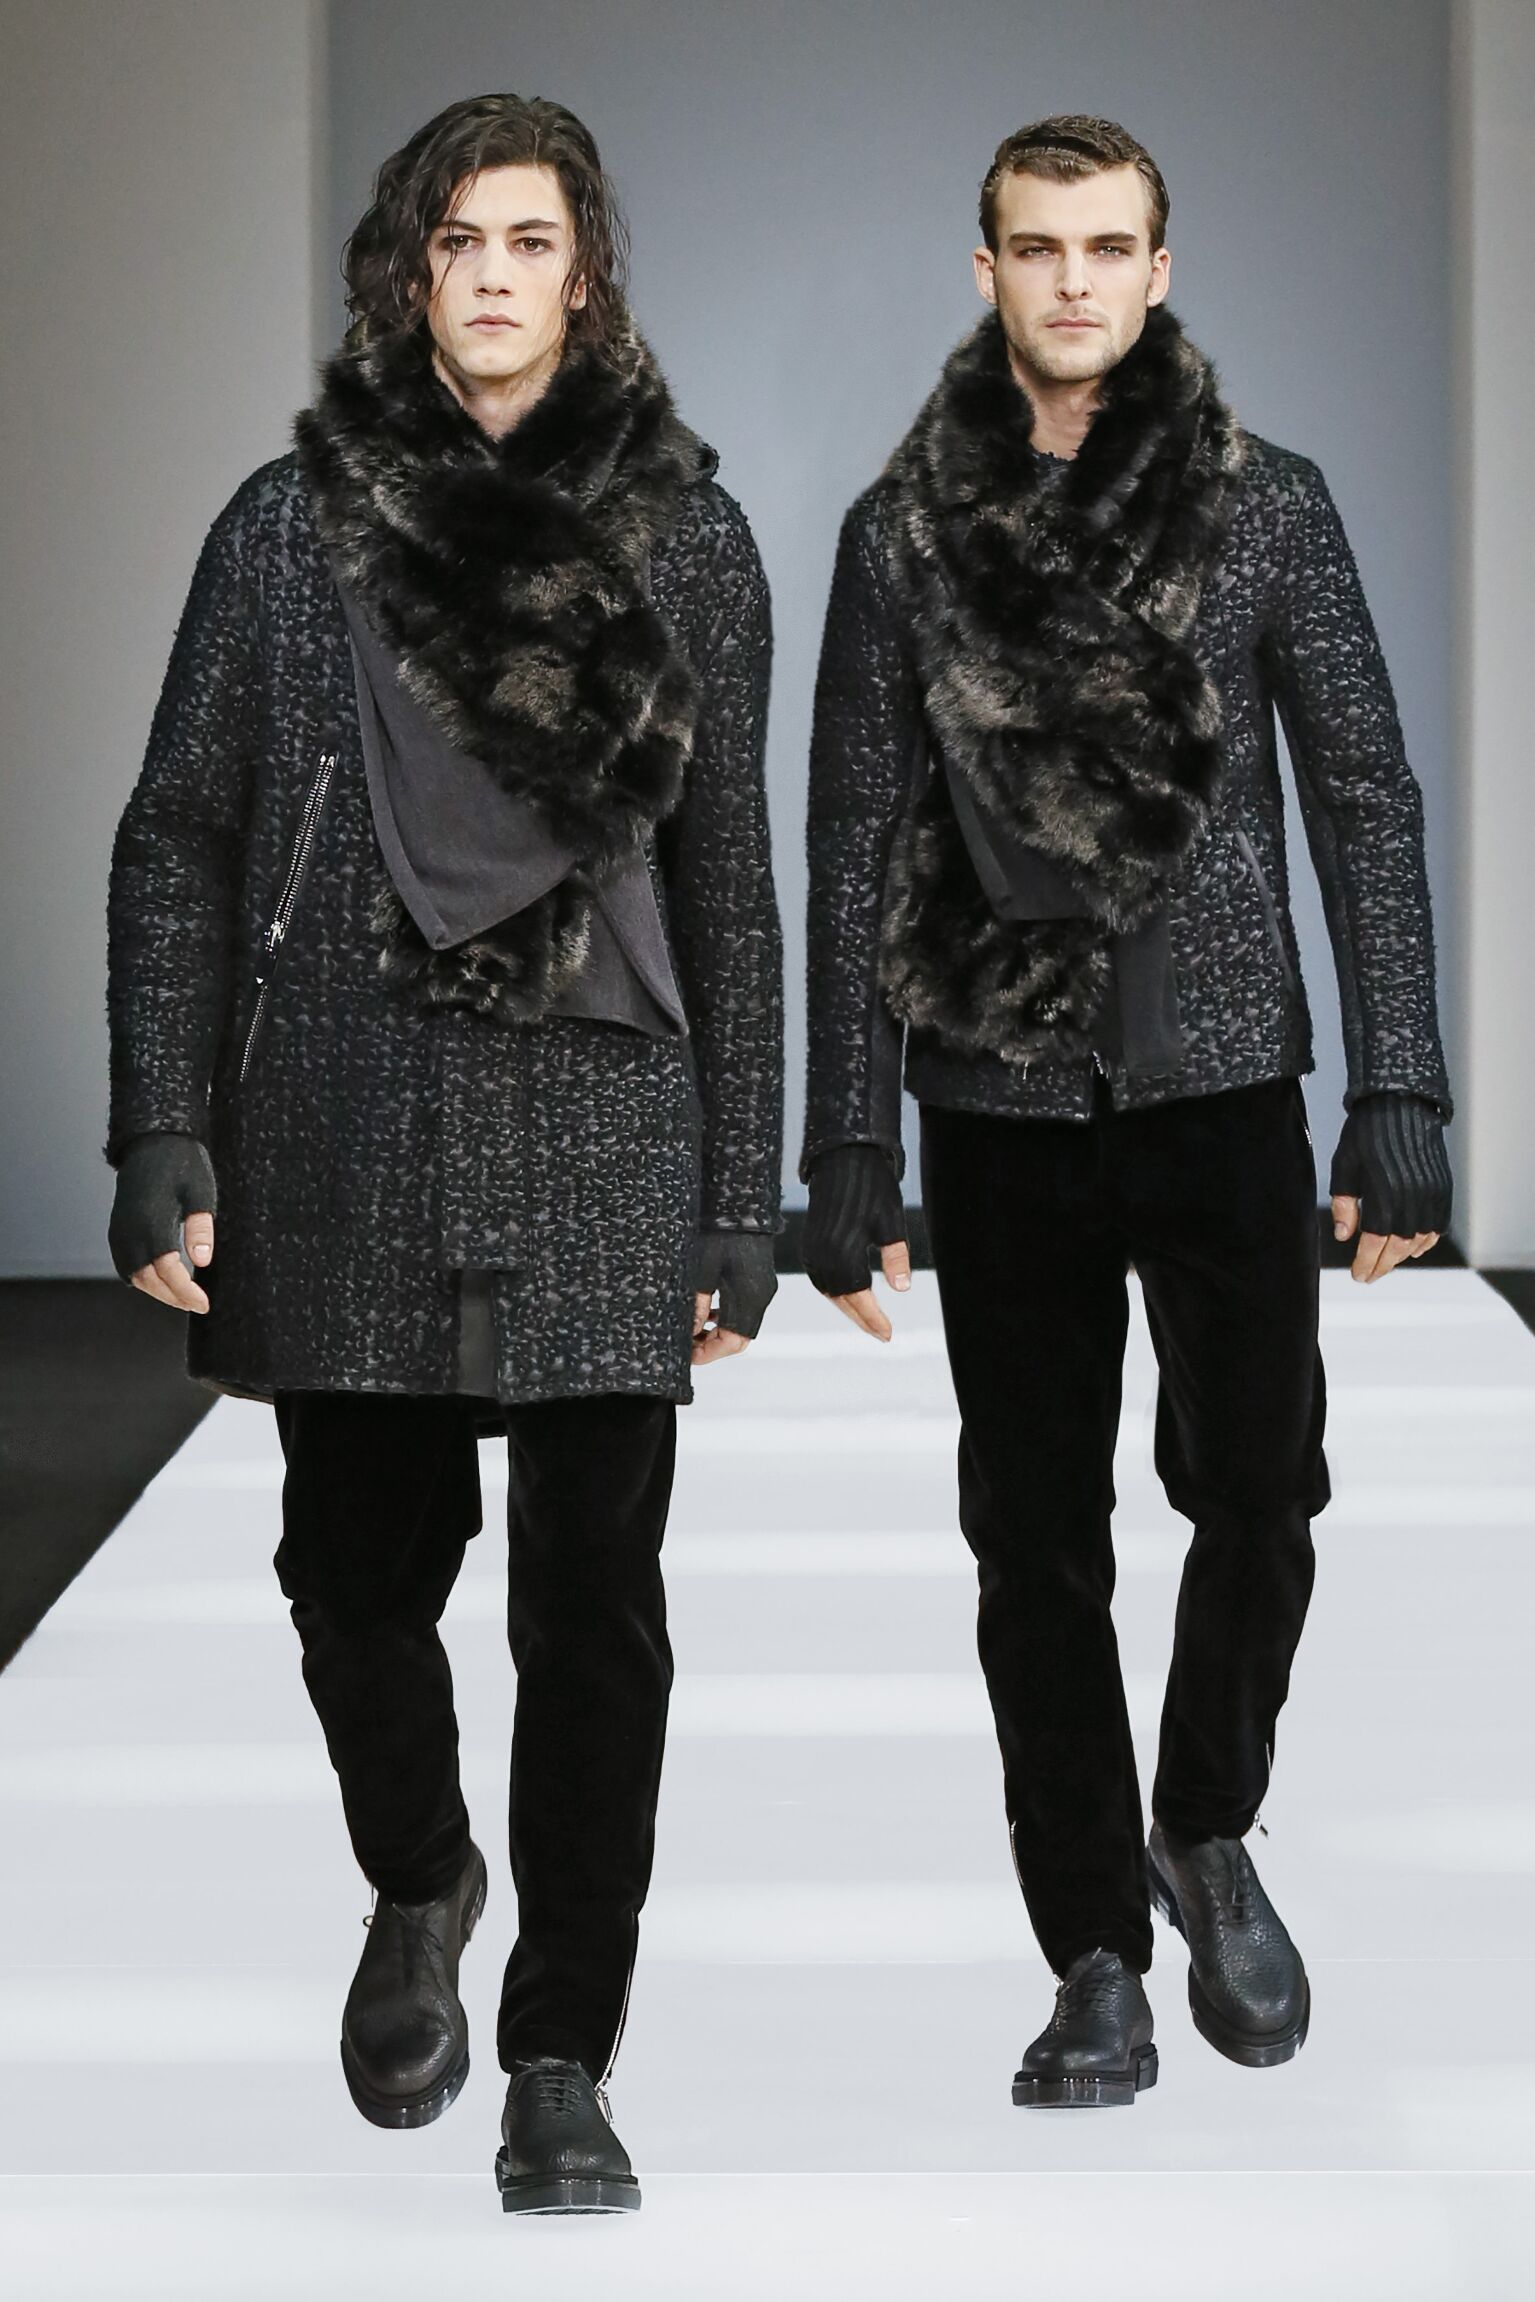 Catwalk Emporio Armani Fall Winter 2015 16 Men's Collection Milano Fashion Week